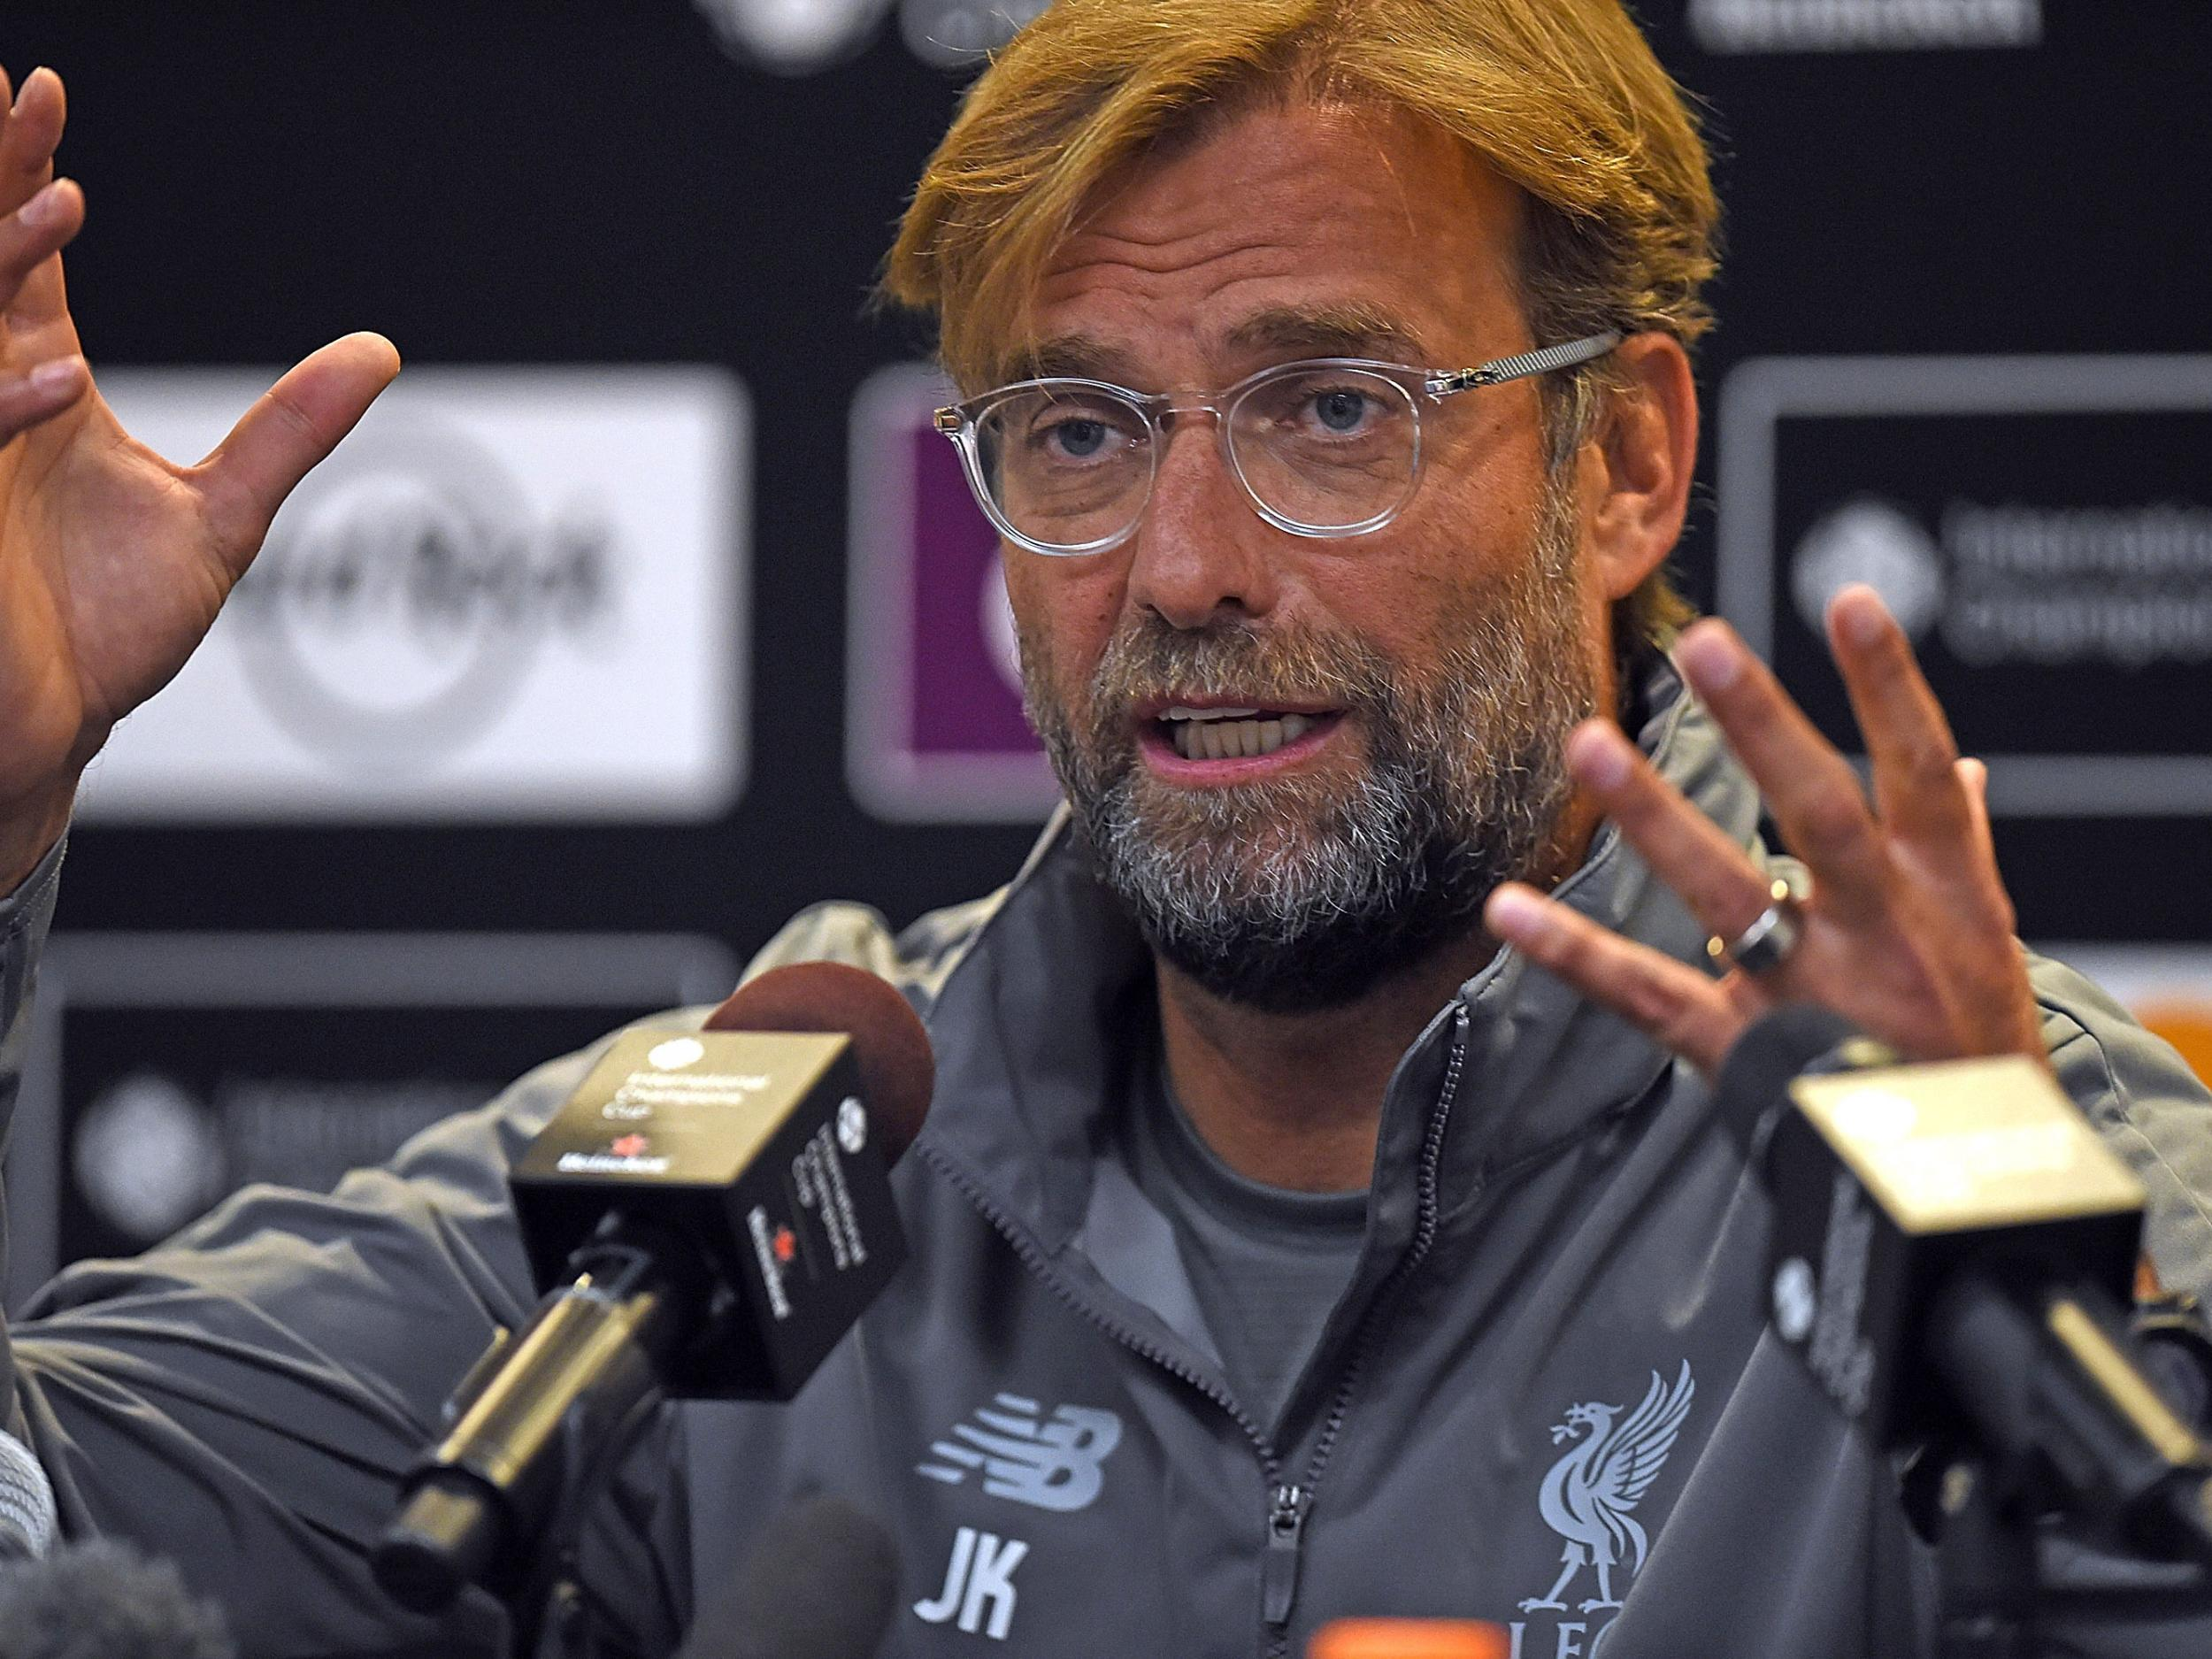 Liverpool manager Jurgen Klopp shrugs off Jose Mourinho's silverware comments